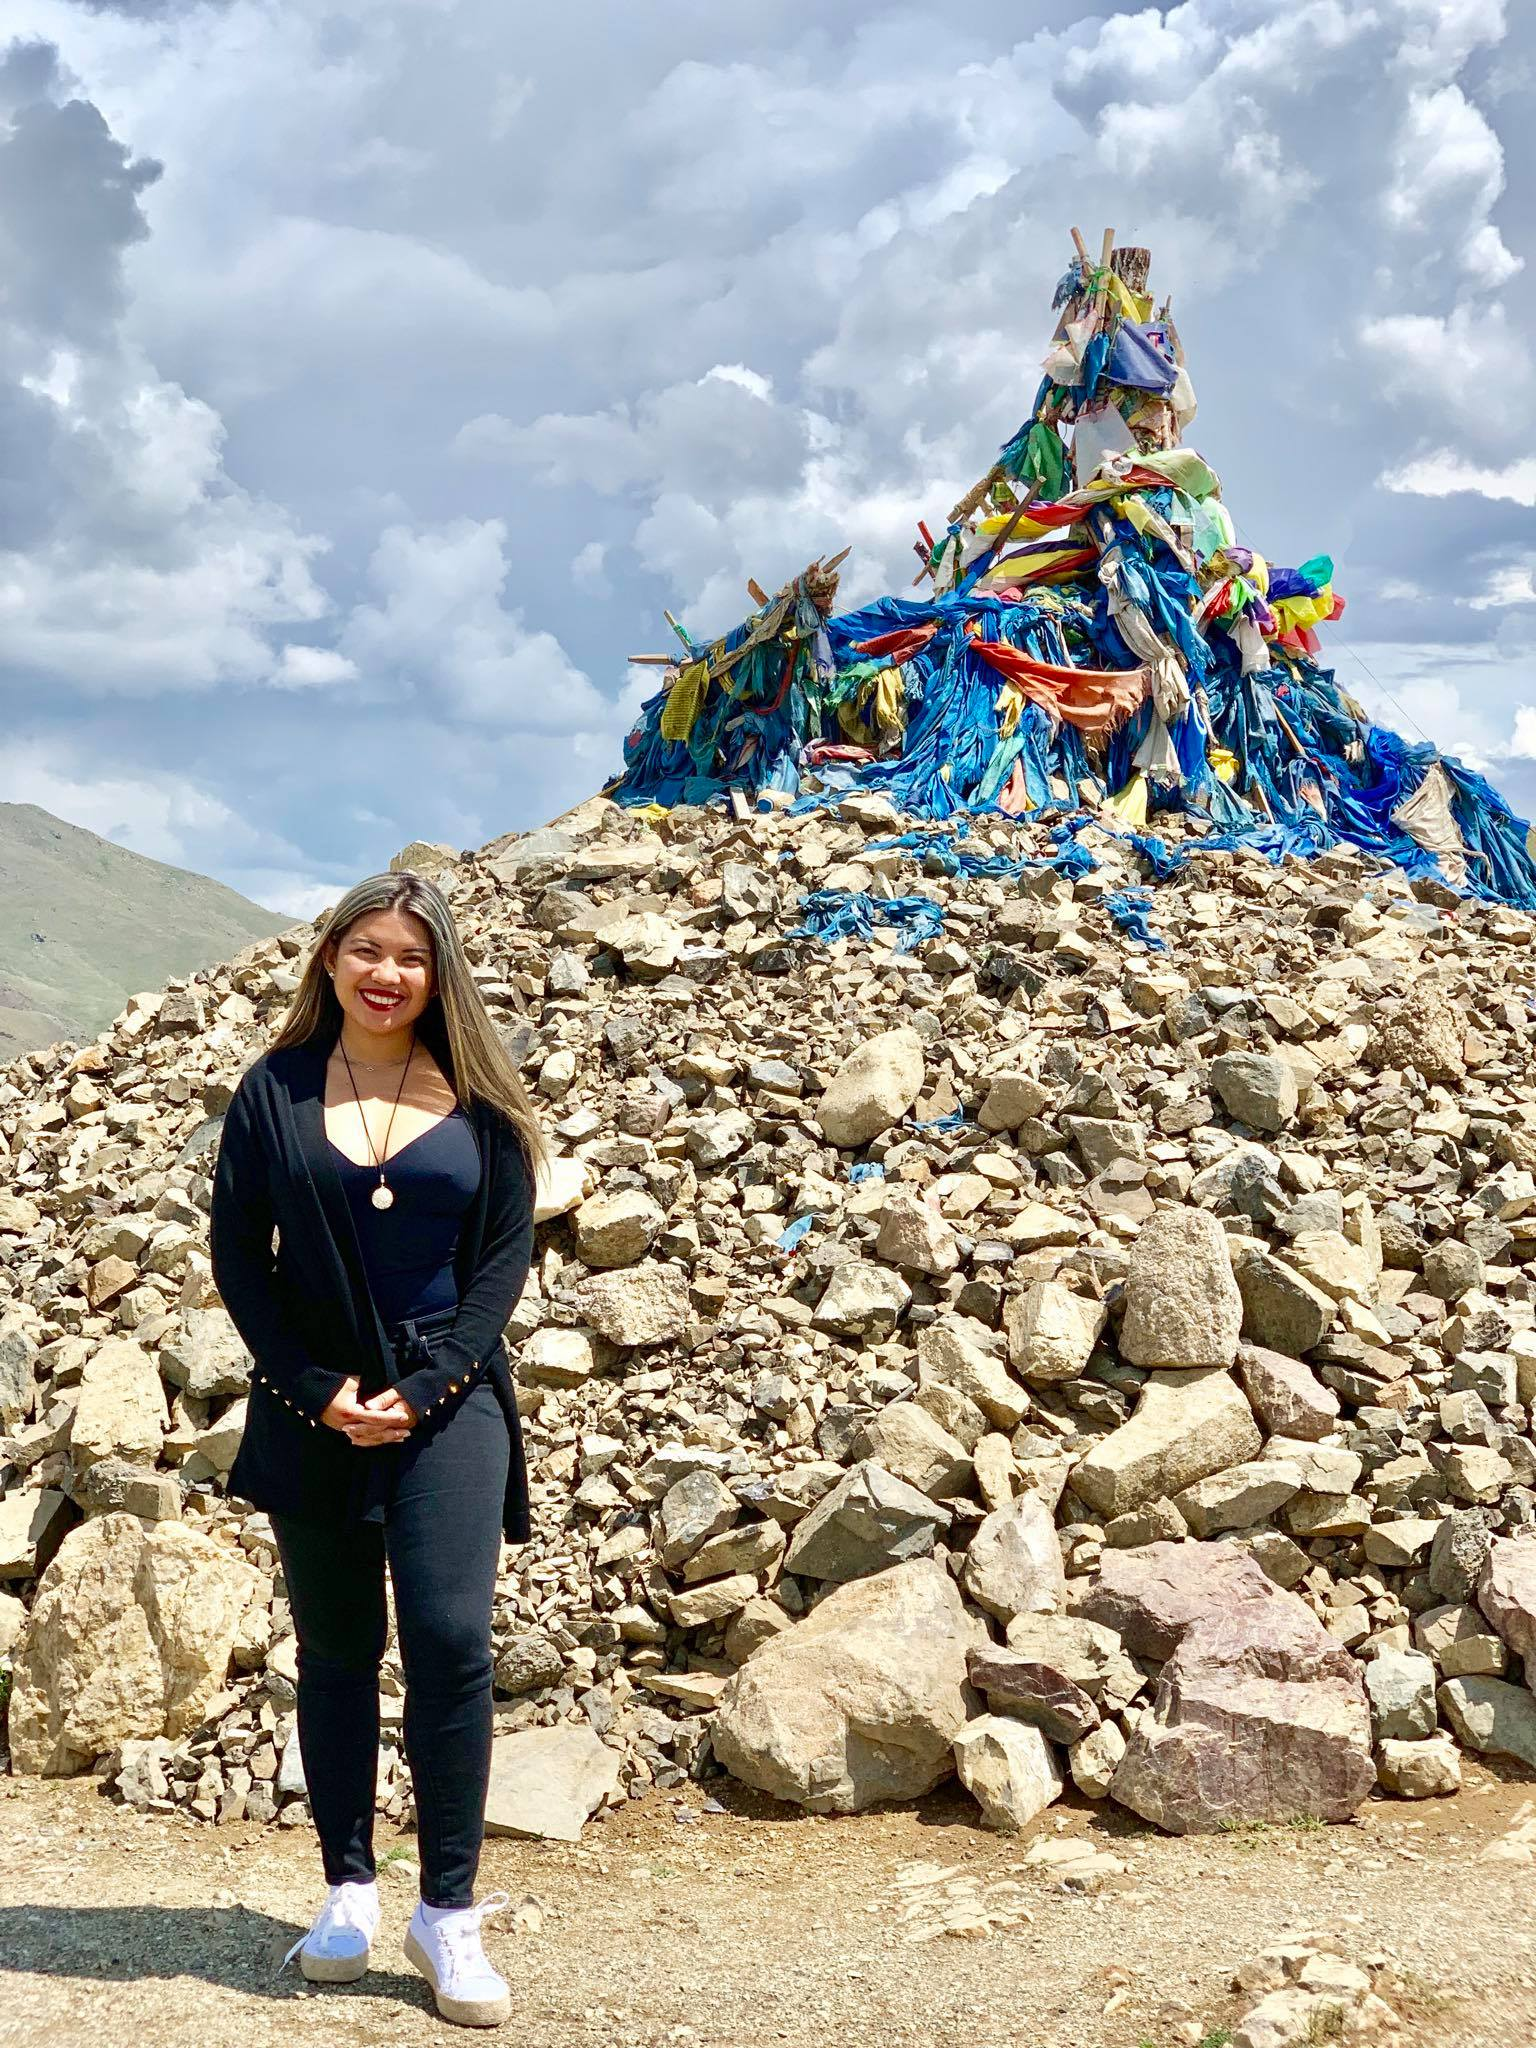 Kach Solo Travels in 2019 Hello from MONGOLIA - my 130th country12.jpg